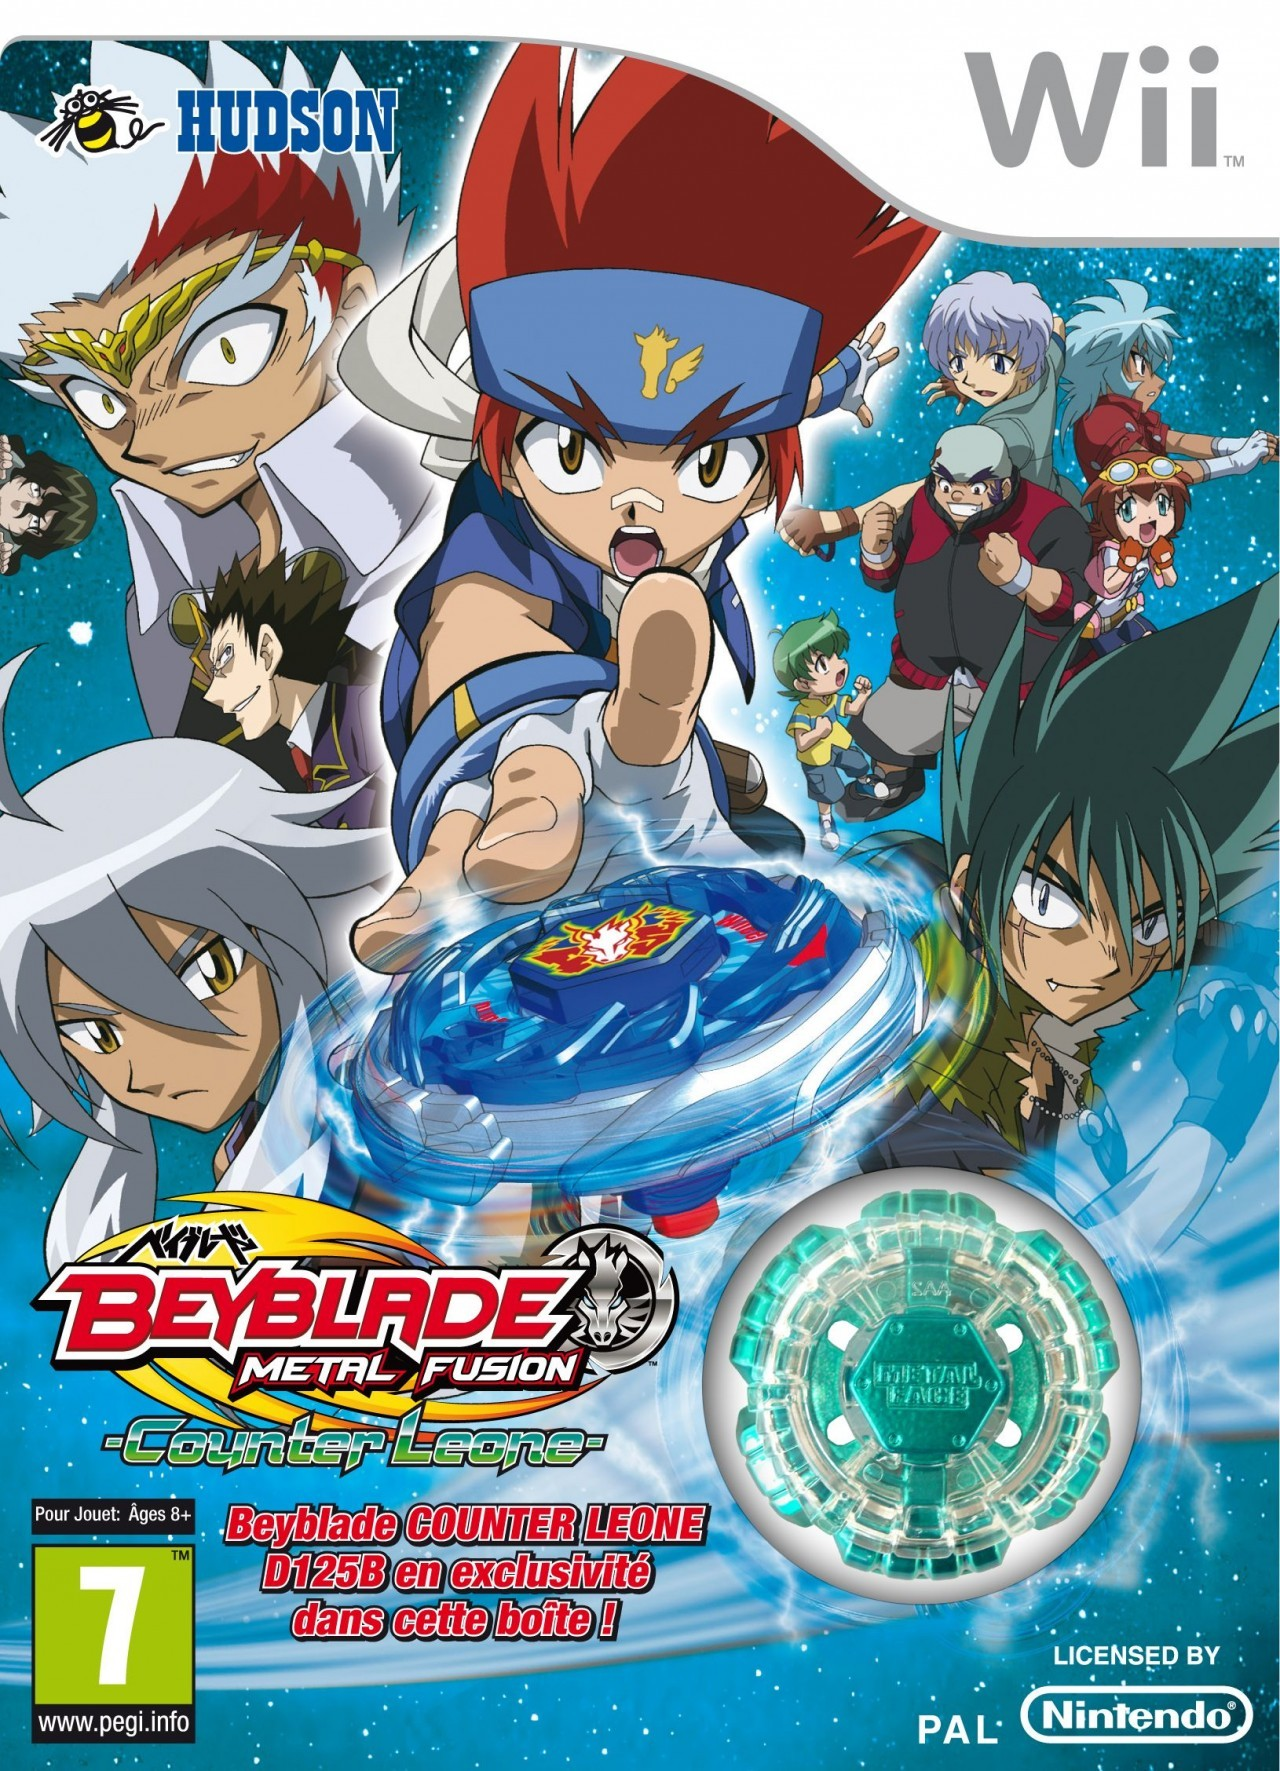 Beyblade Games Online - Play for Free on Play-Games.com